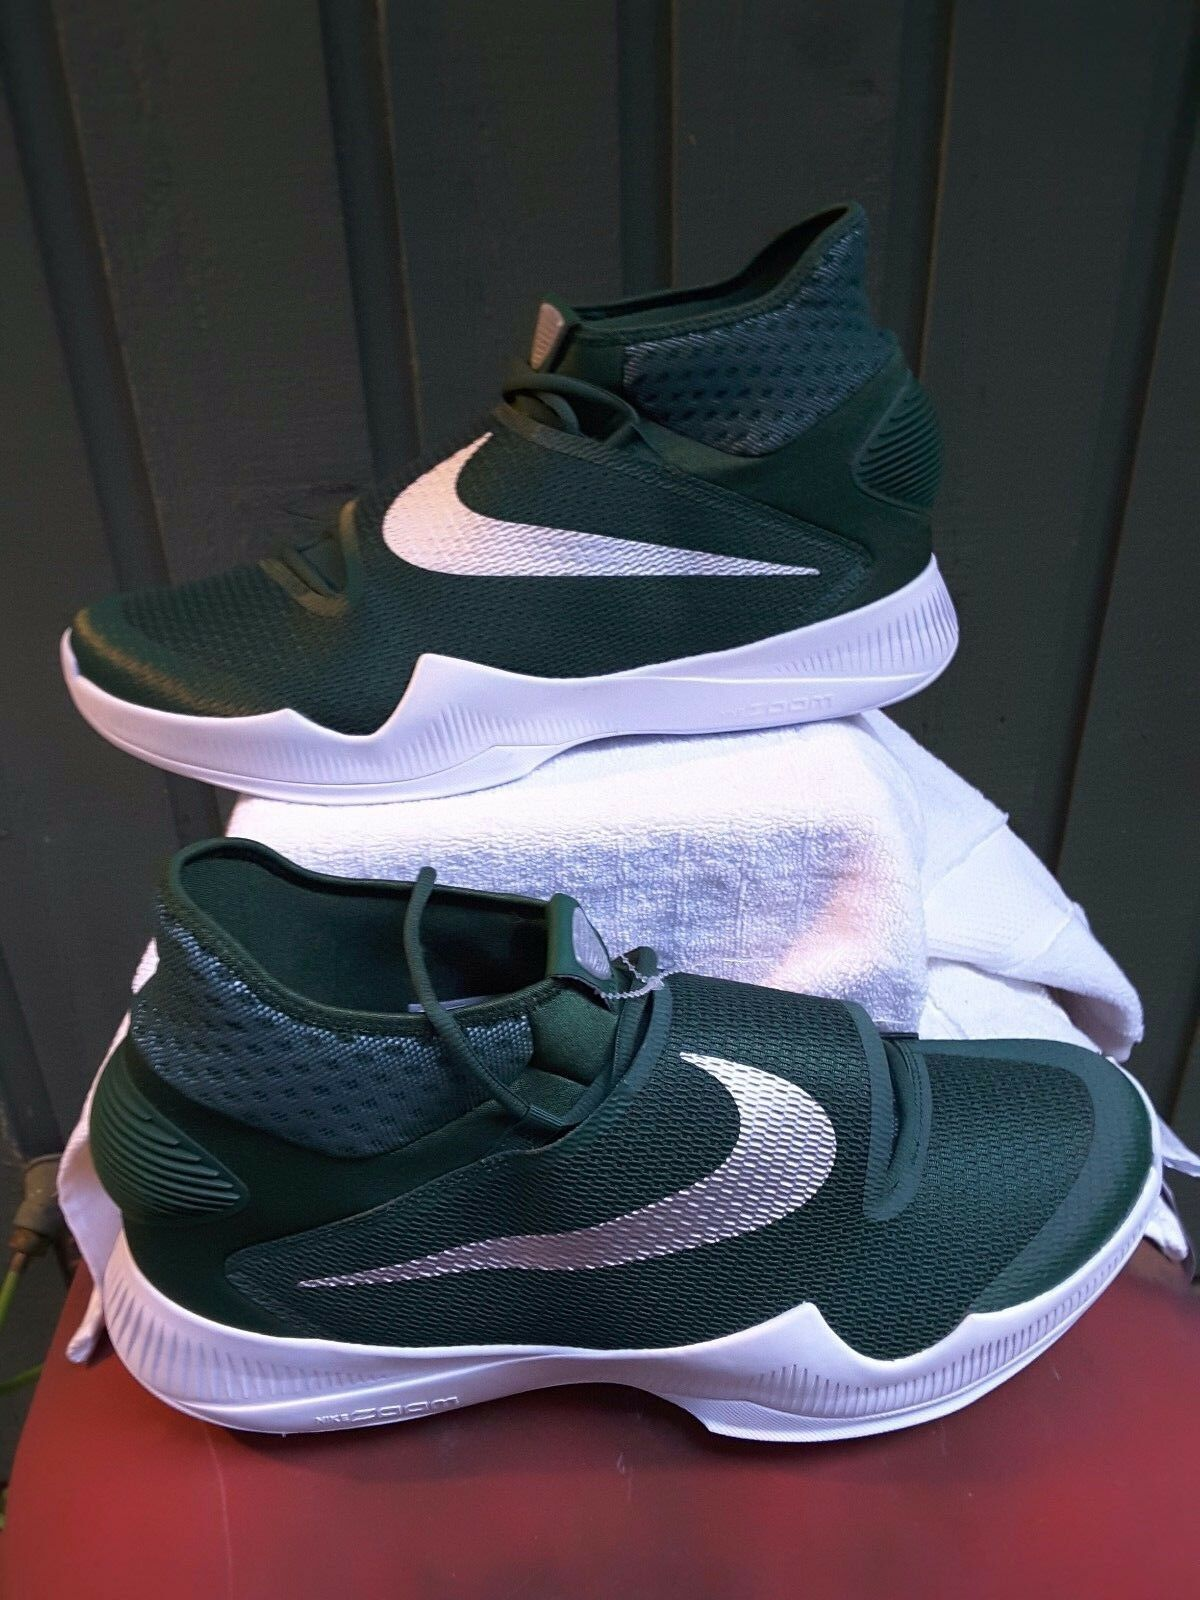 PEagle  Packer Jets   NIKE  HYPERREV  MENS GREEN & WHITE  SNEAKERS  sz 18  BN